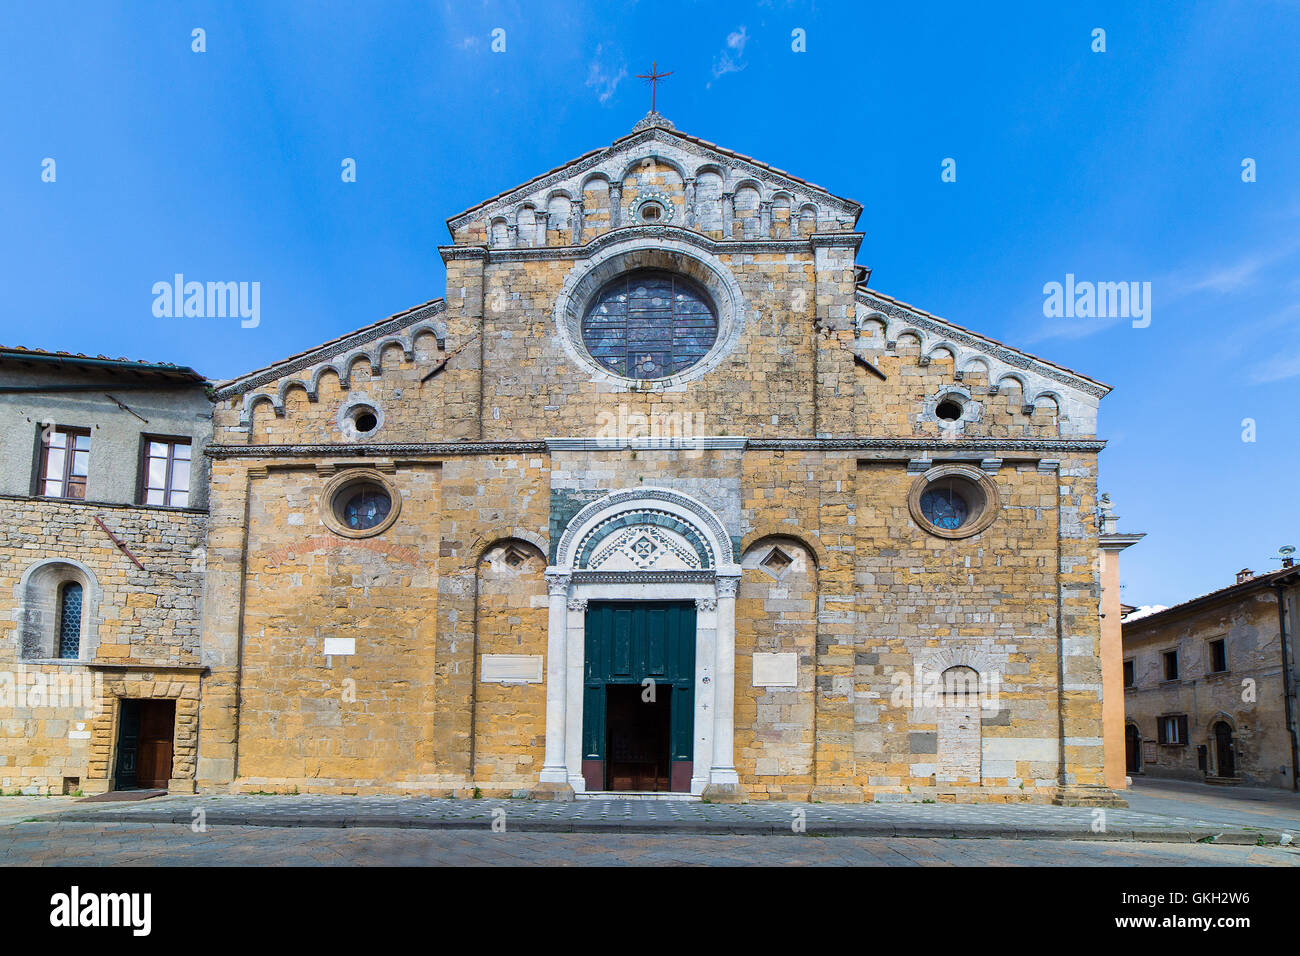 The cathedral of Santa Maria Assunta in Volterra, Tuscany, Italy. - Stock Image